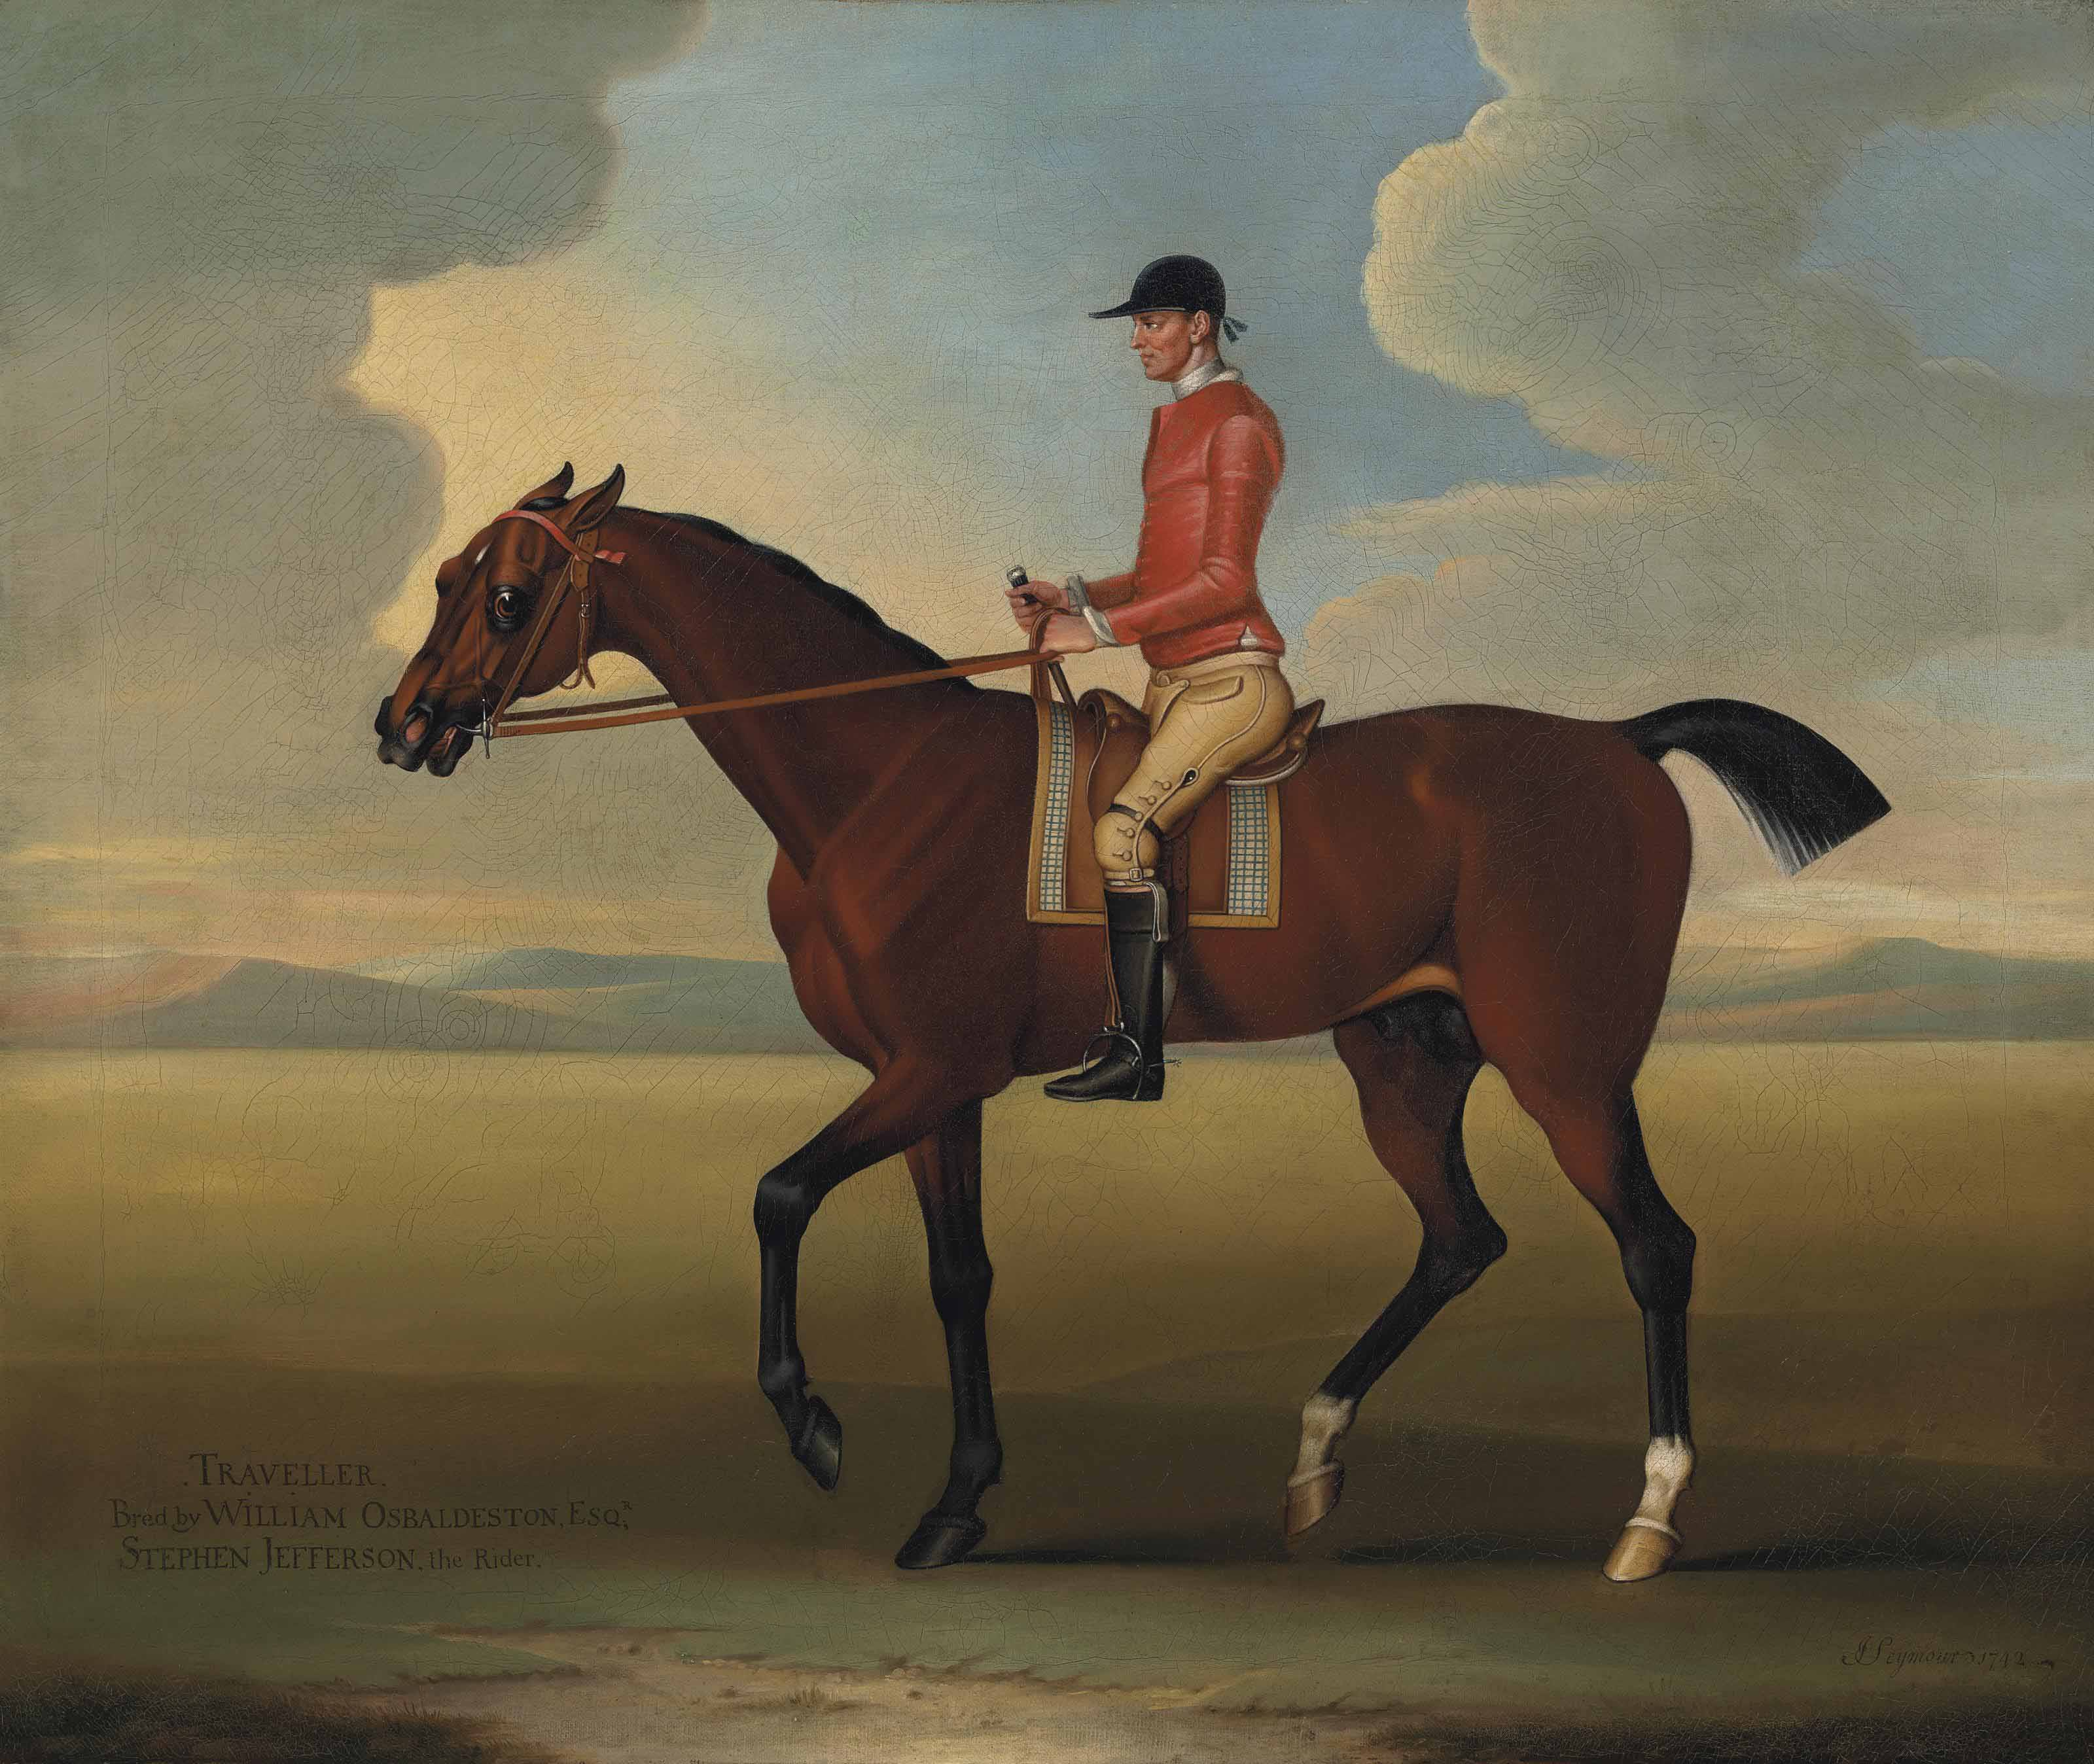 Traveller with Stephen Jefferson up, in a landscape